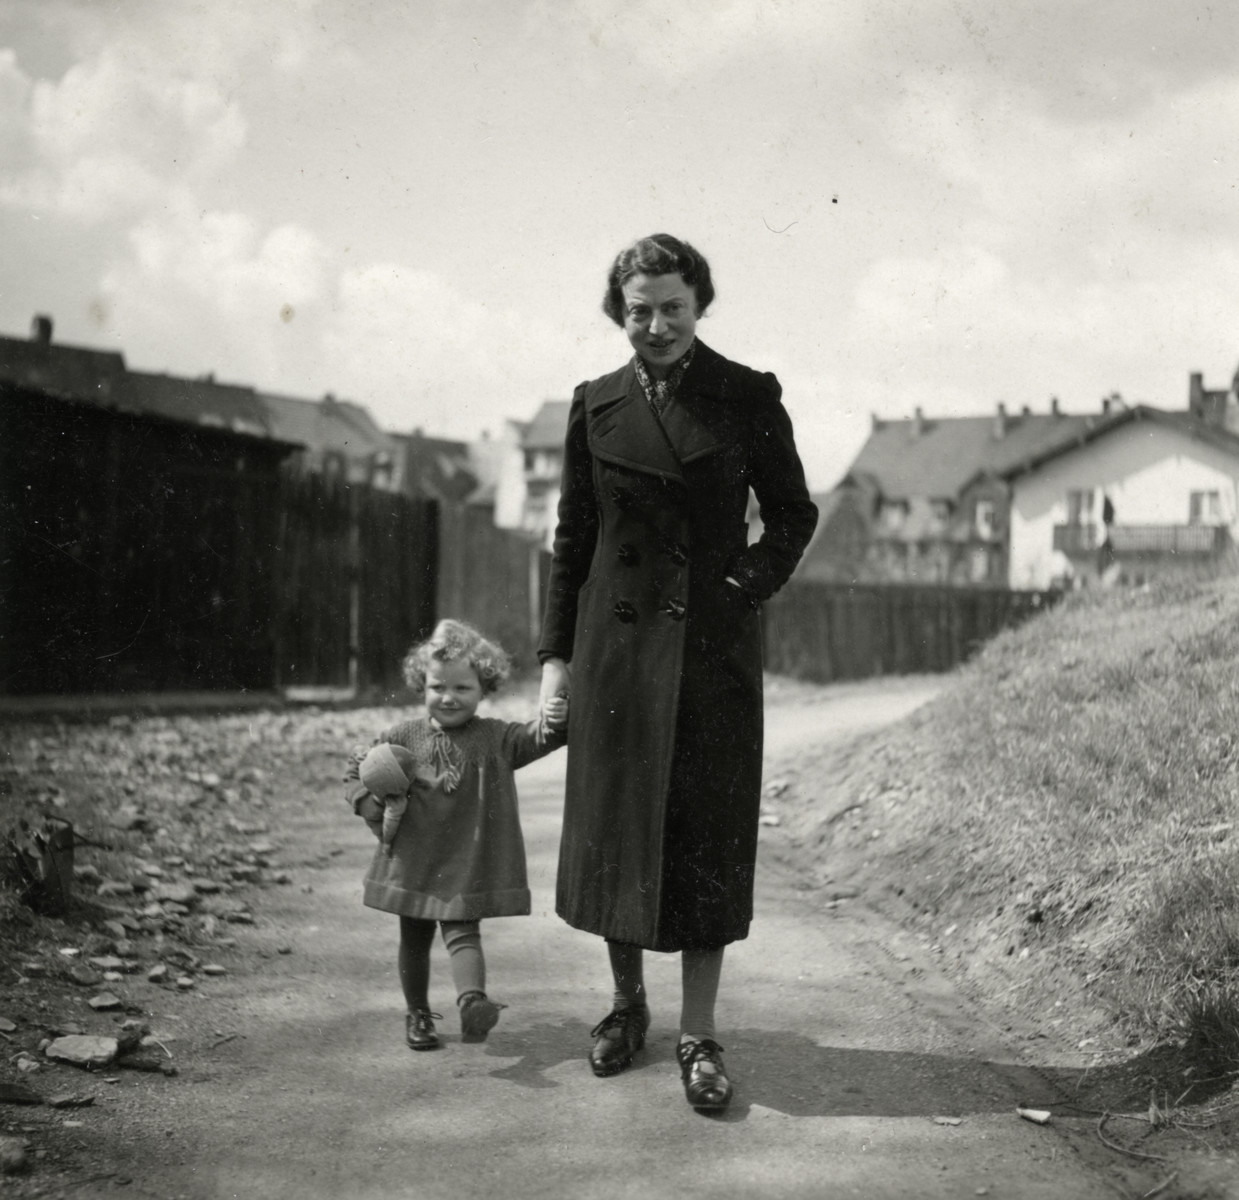 Ruth Reutlinger and her mother, Elsa Reutlinger, go for a walk.